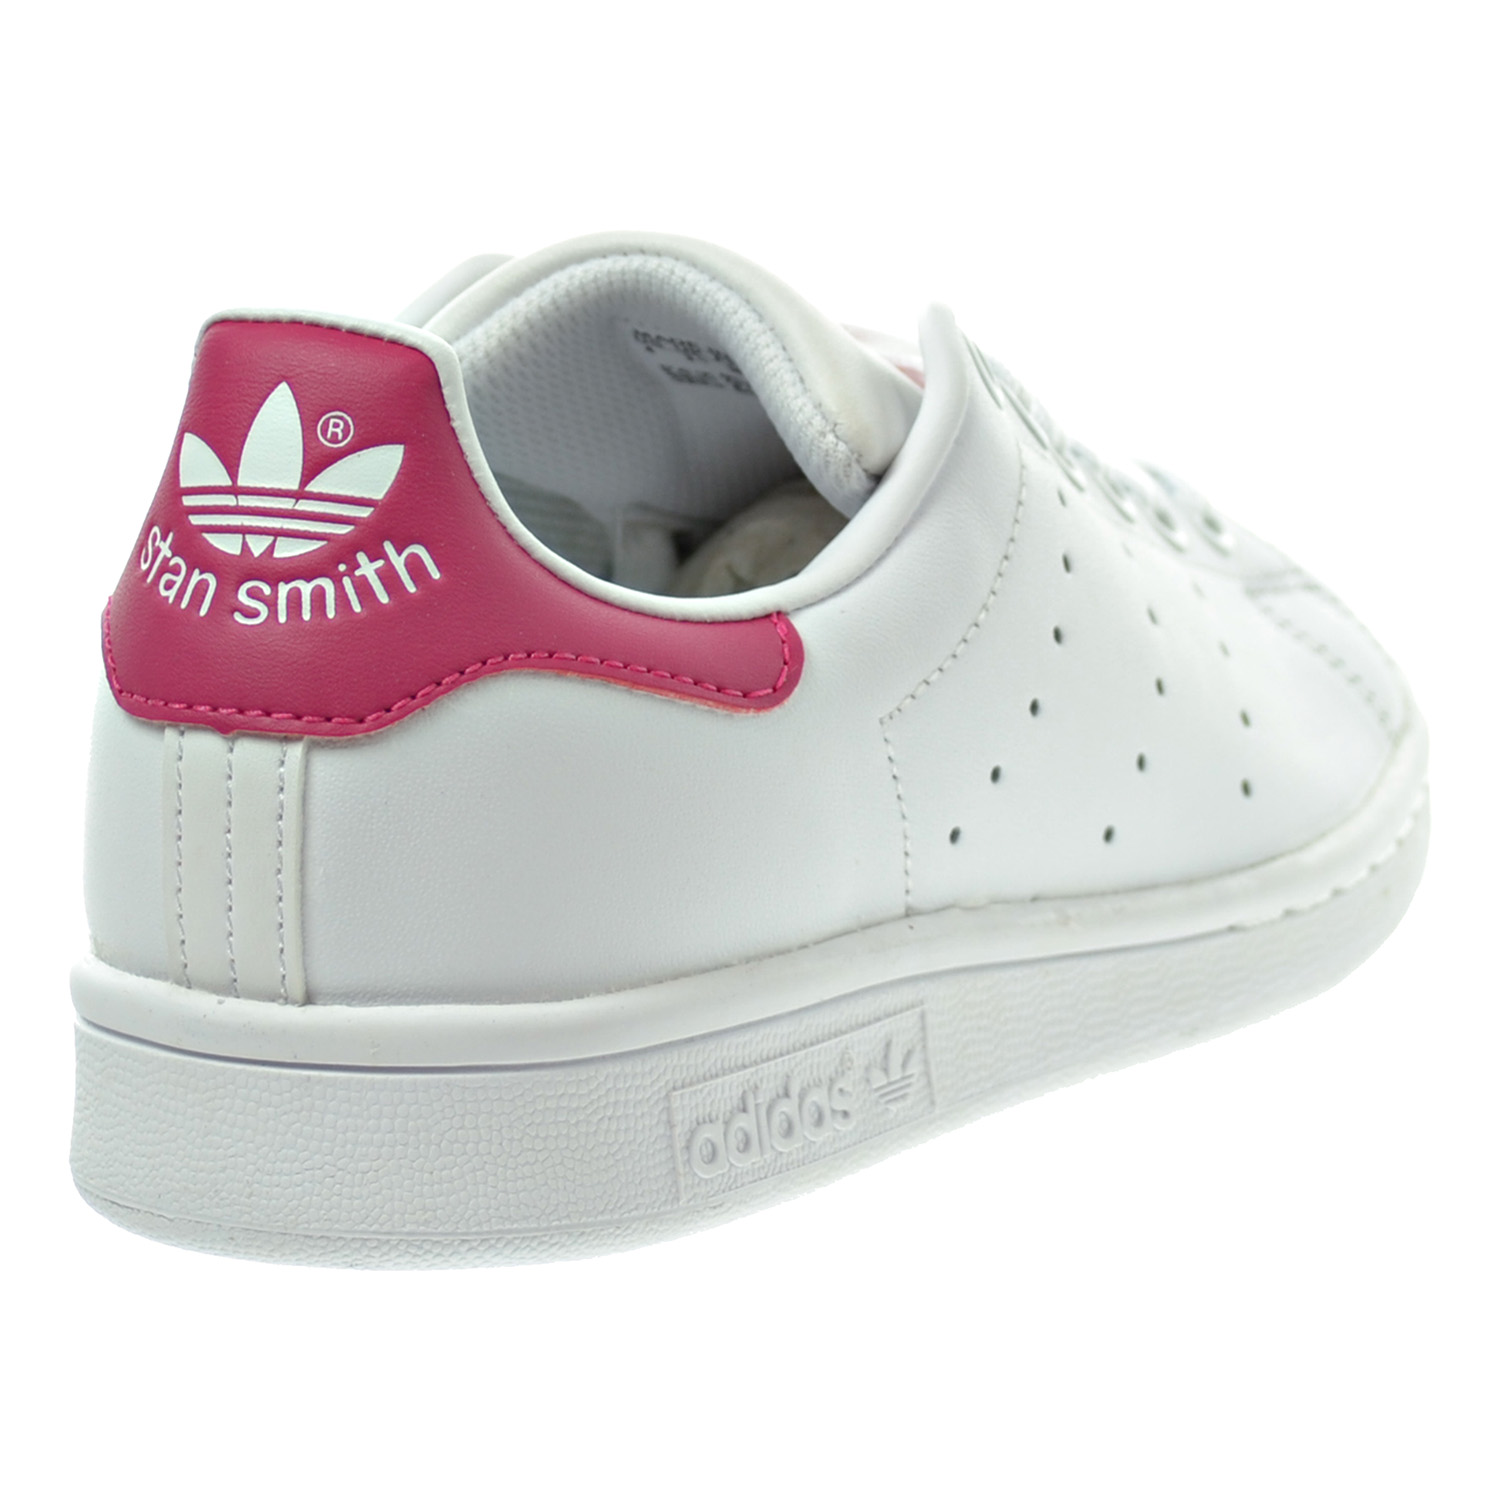 fa2066bbdbb Adidas Stan Smith J Big Kid s Shoes White Bold Pink b32703